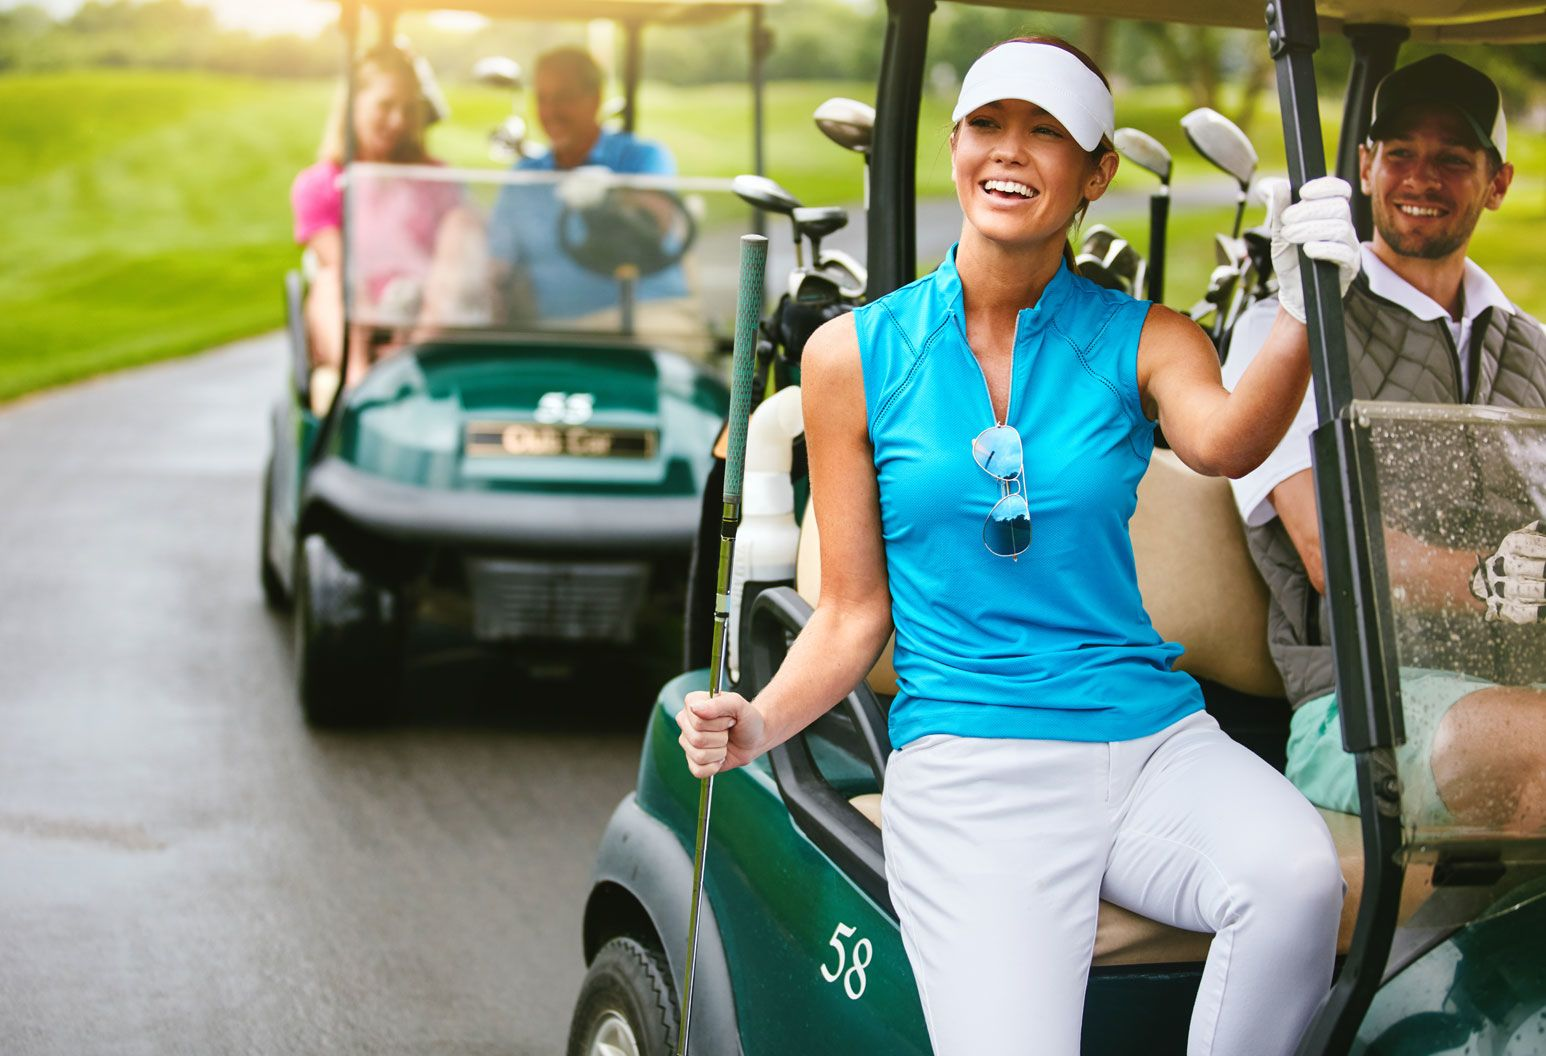 A young couple sits in a golf cart on a golf course. The focus is on the woman, who is wearing a blue top and white visor. She holds a golf club in her hand and is exiting the gold cart.